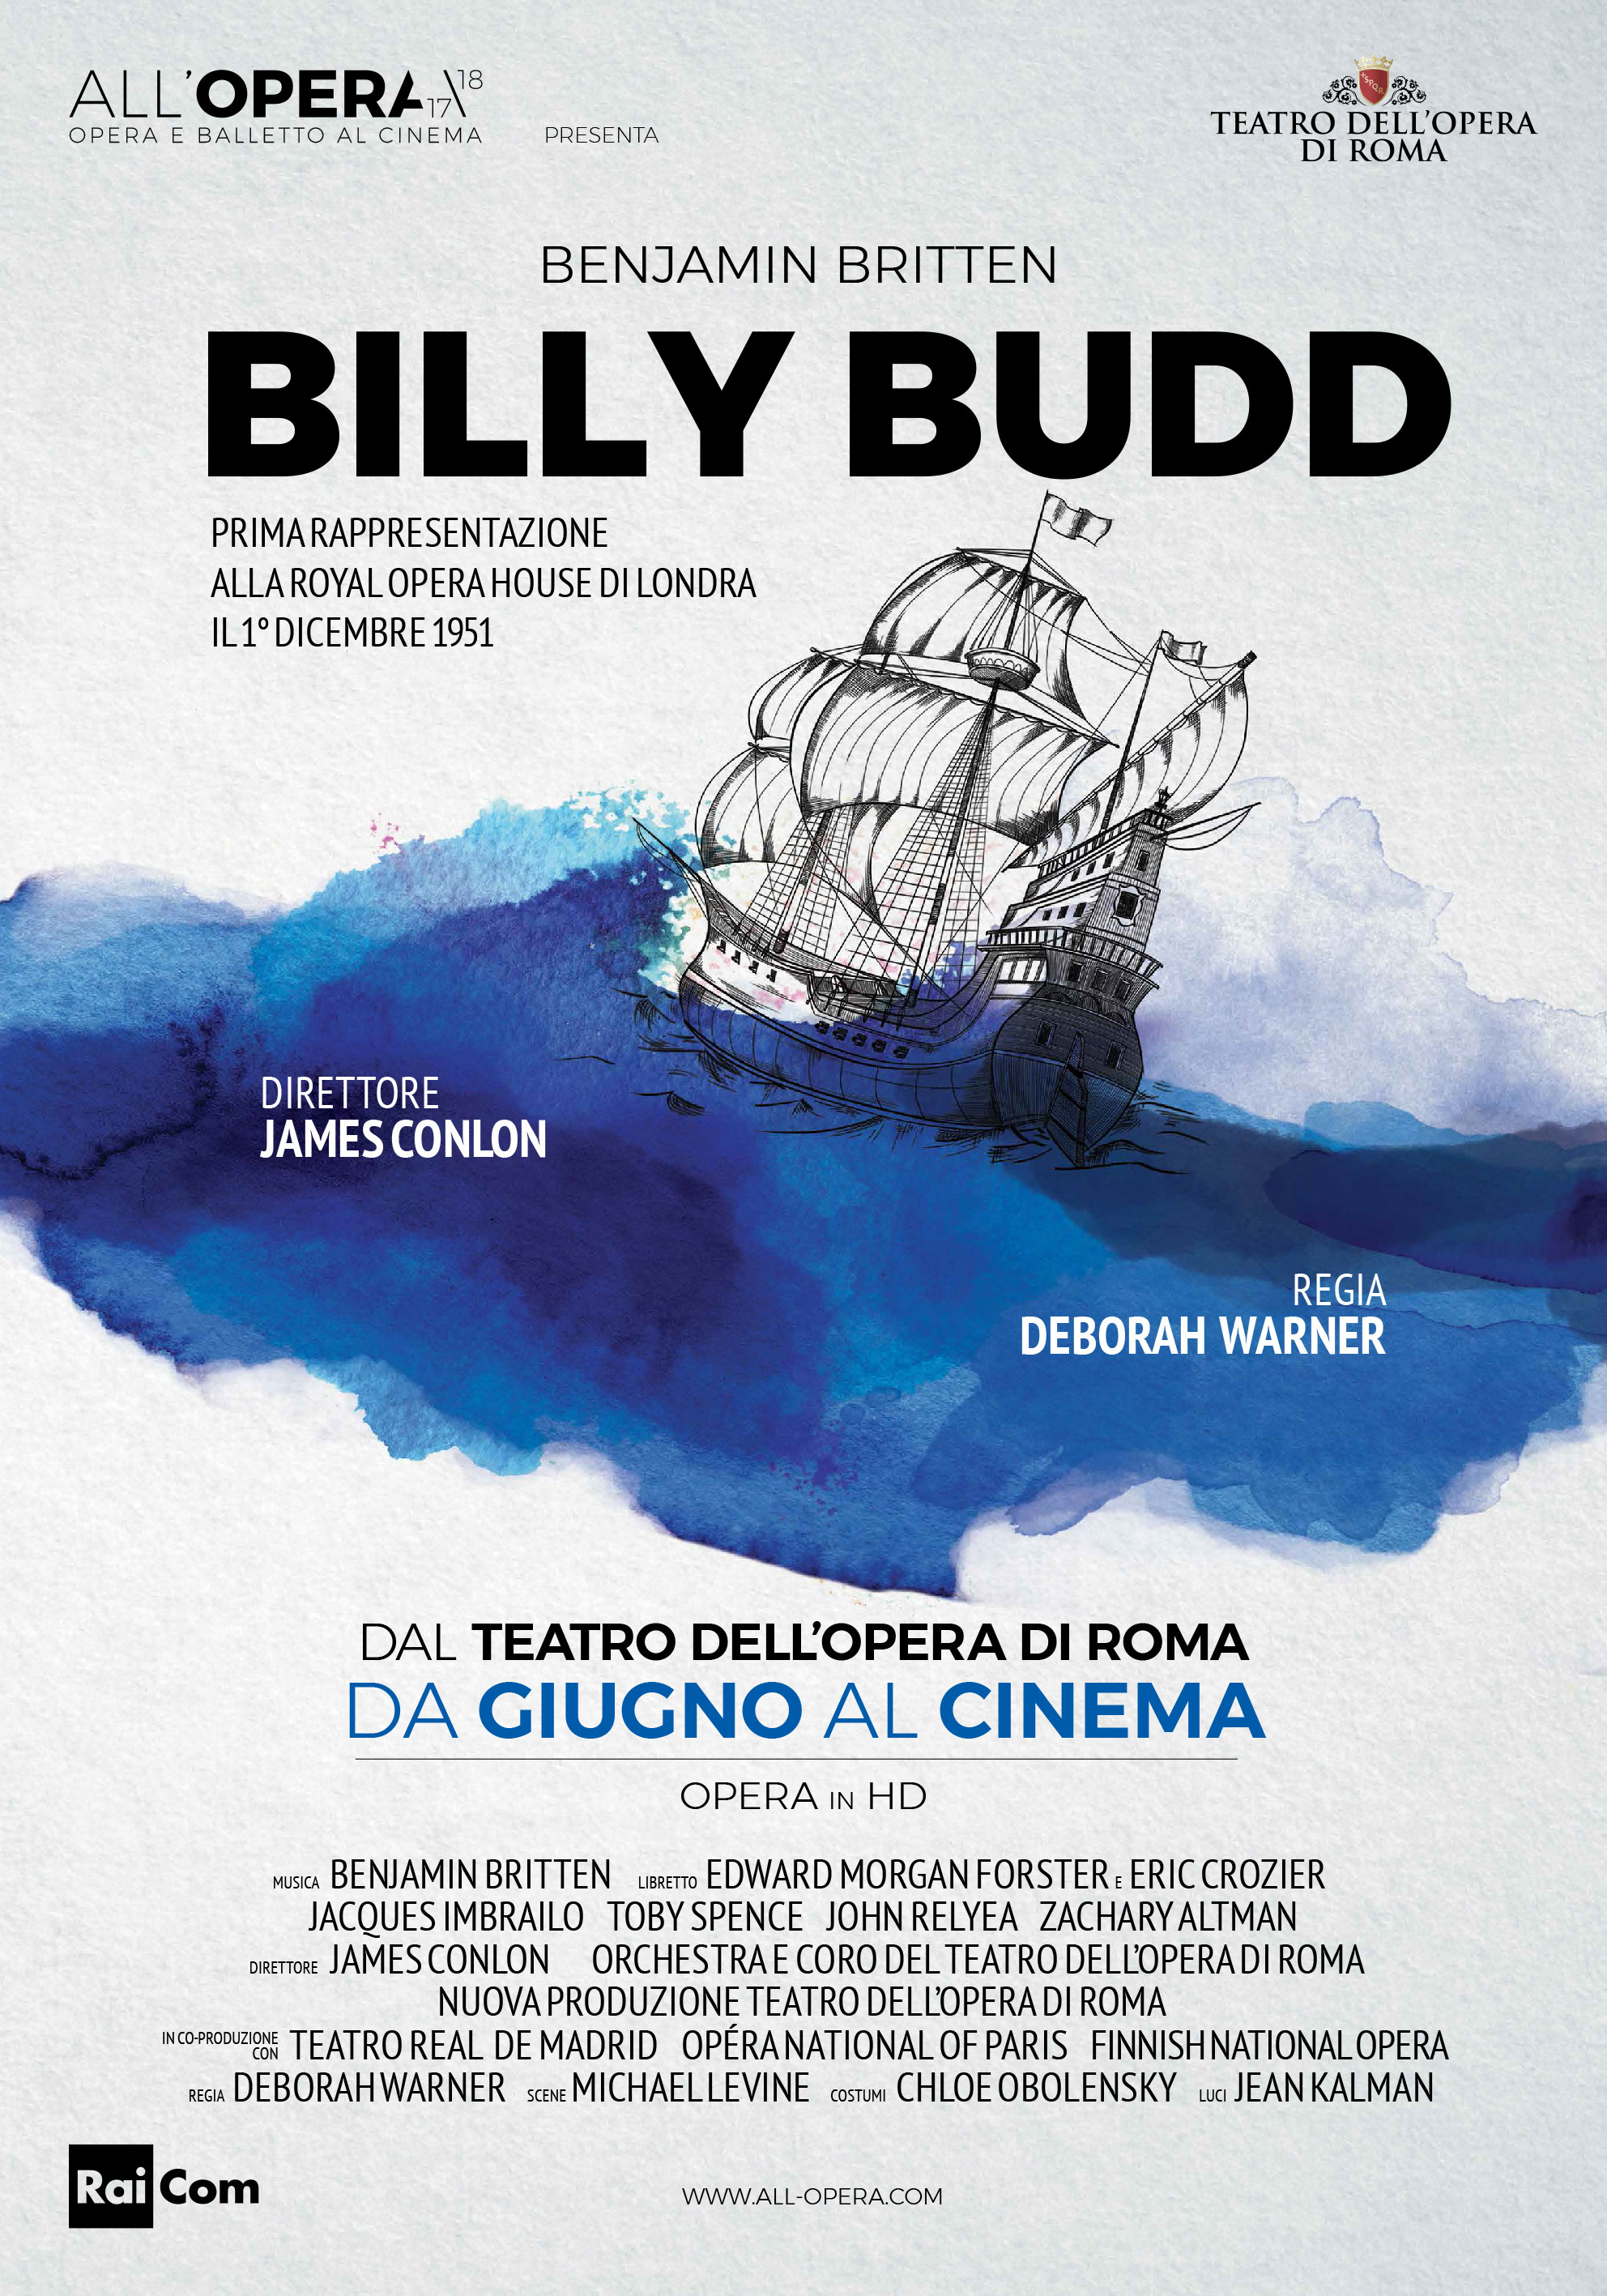 BILLYBUDD_CIN_IT_70X100_170829